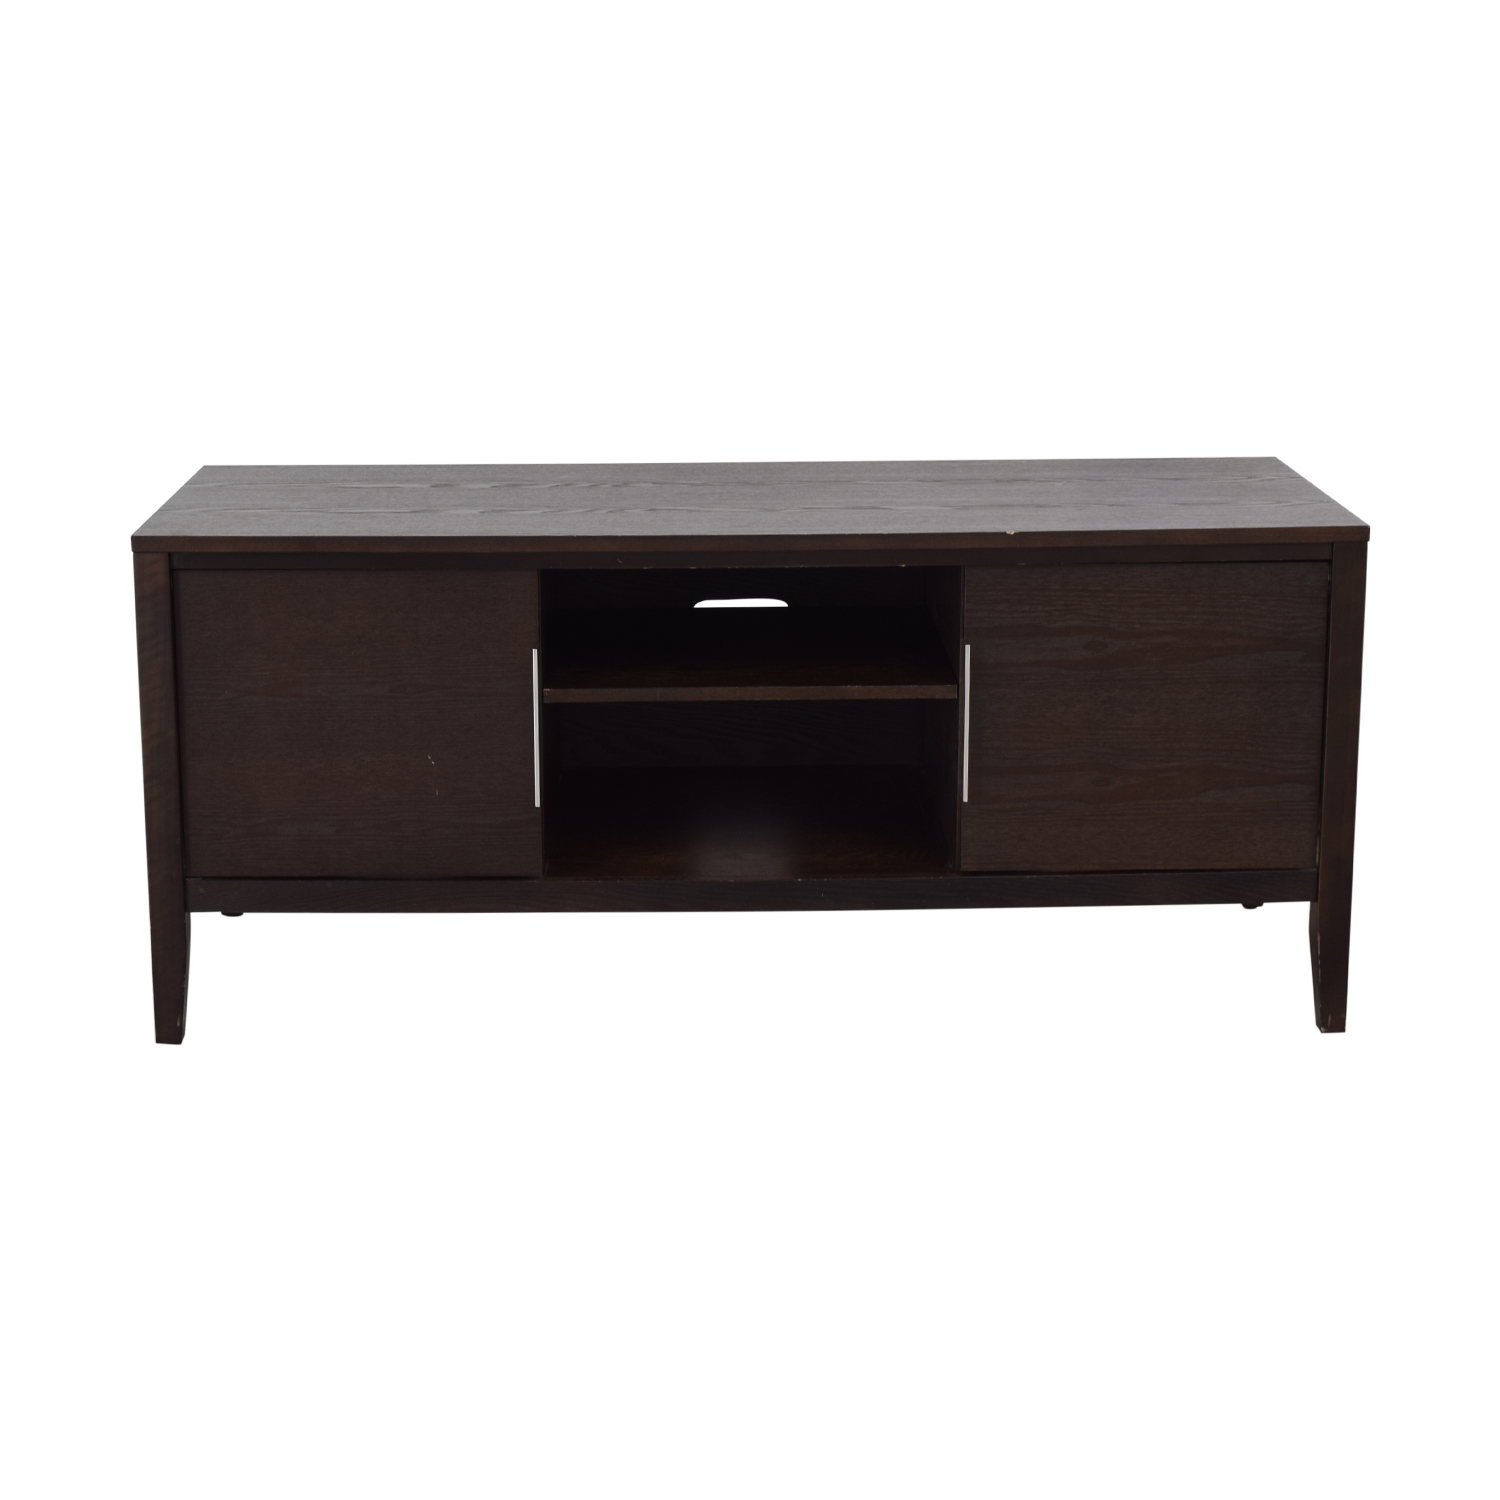 Media TV Stand with Shelves second hand